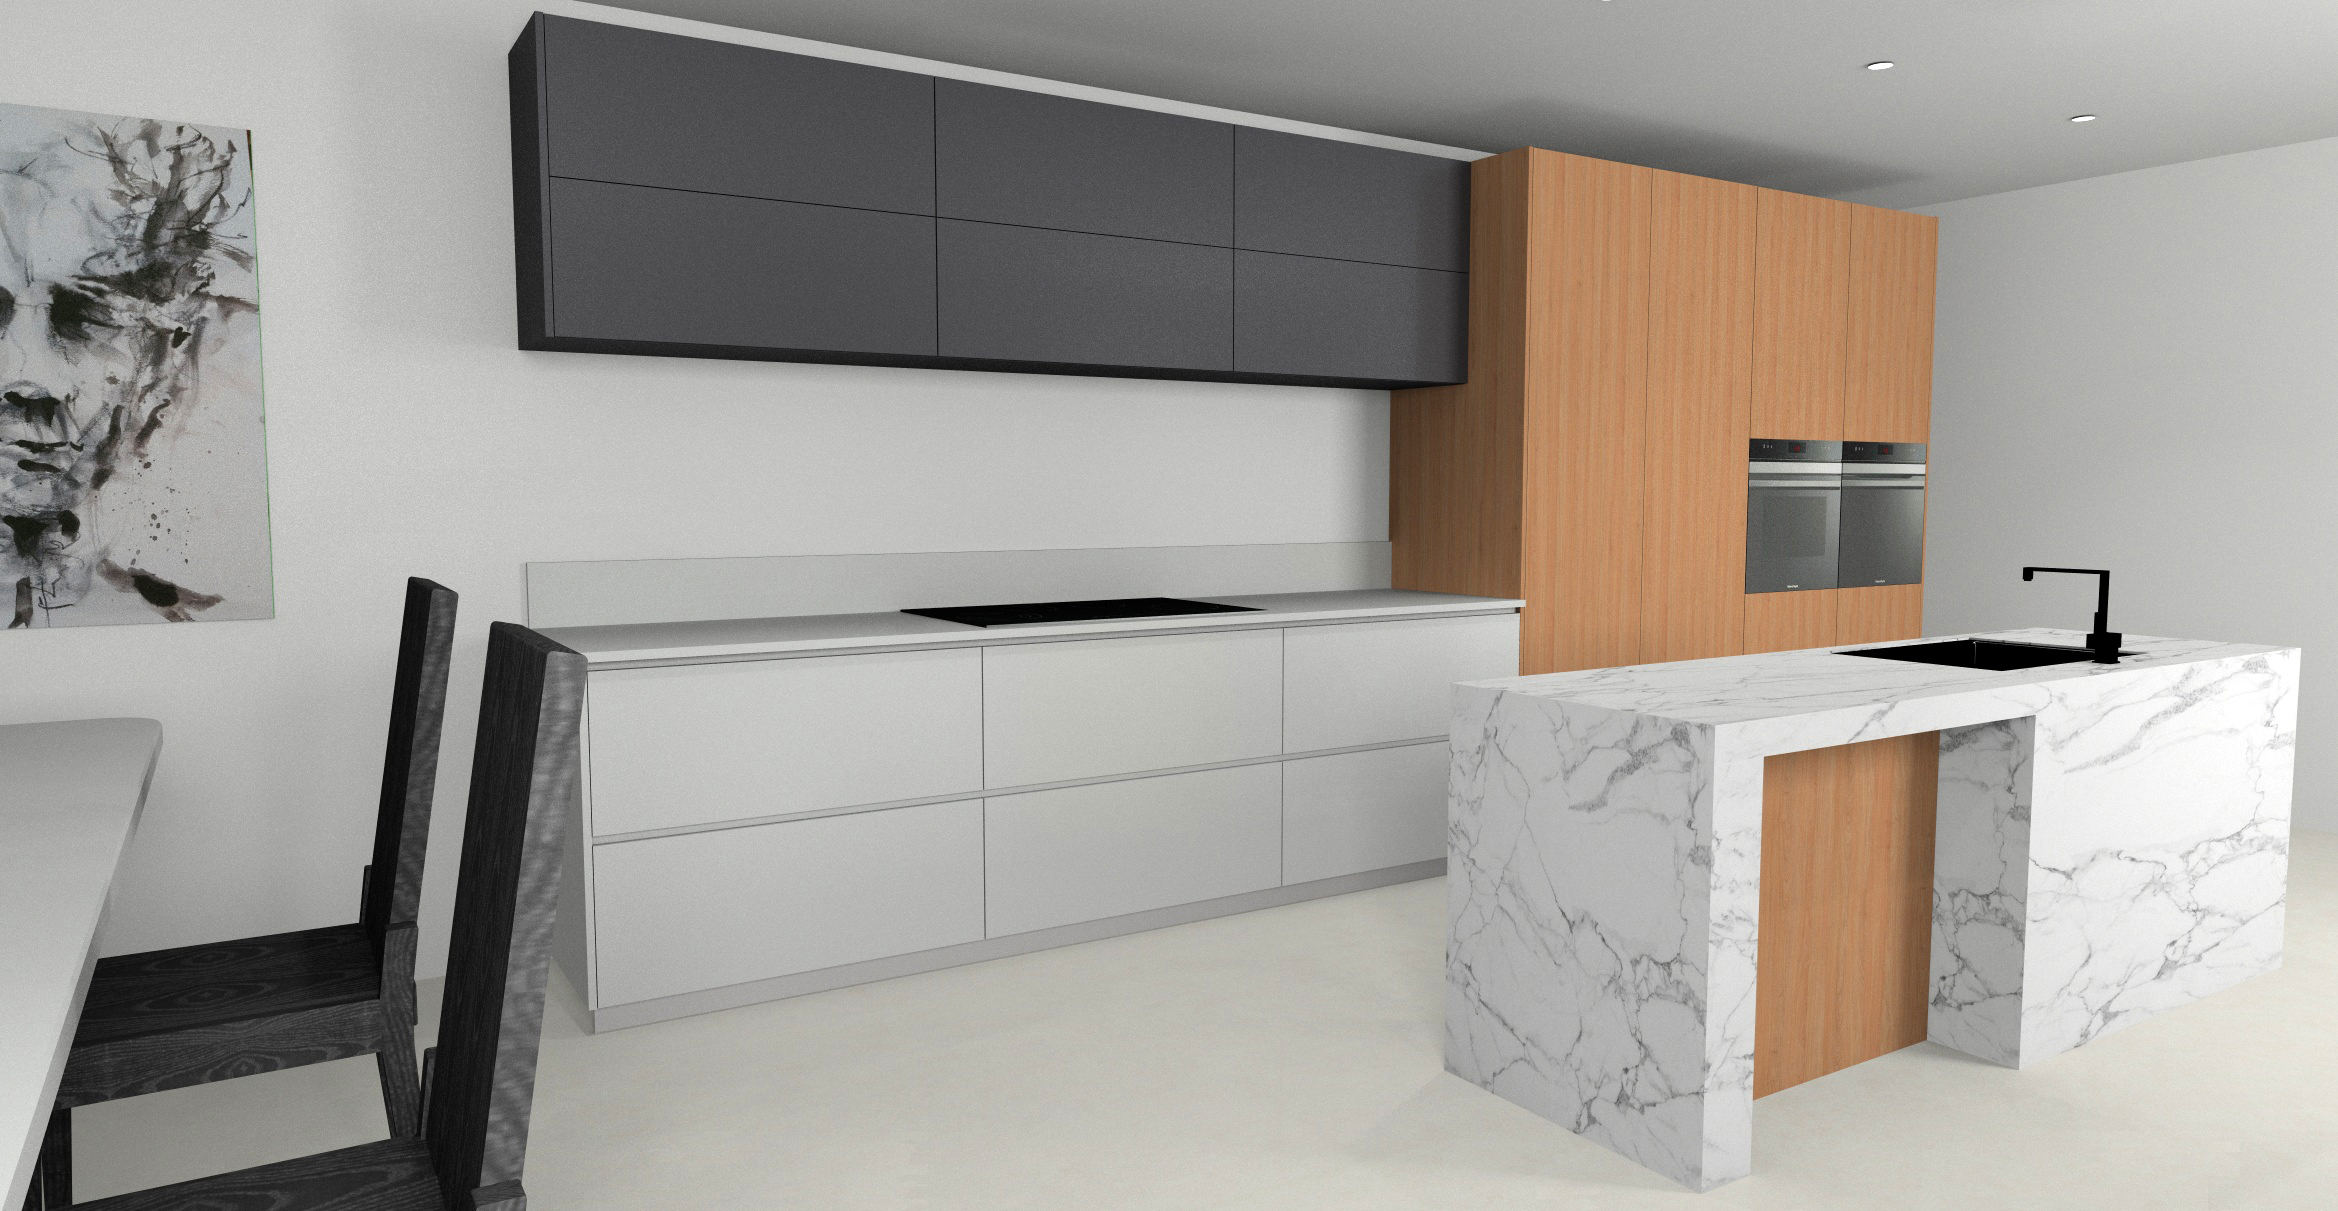 Create Professional Renders With Kd Max 3d Design Software